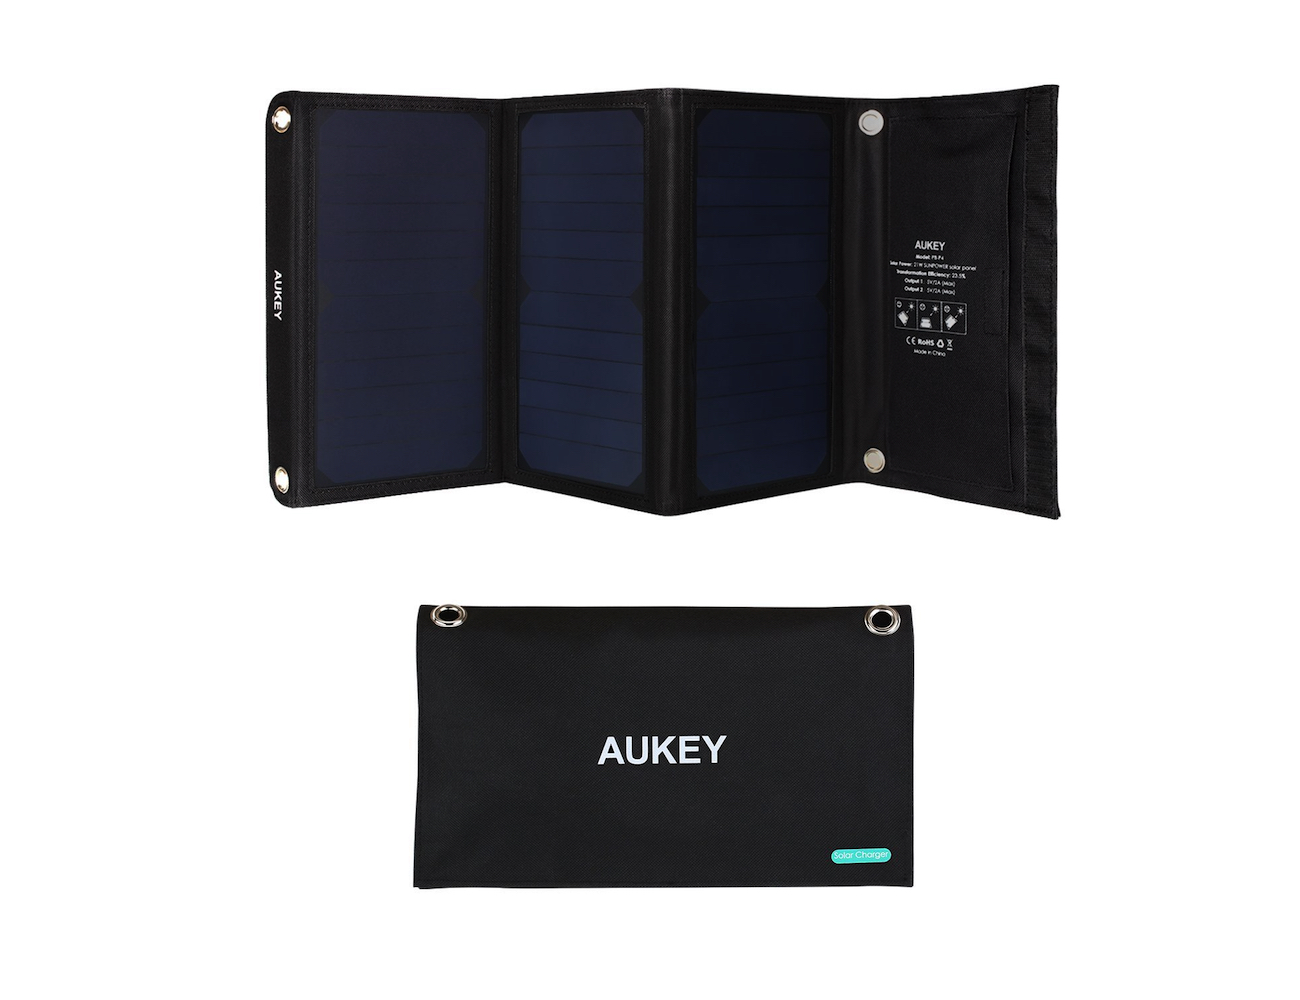 AUKEY SunPower Solar Panel Charger